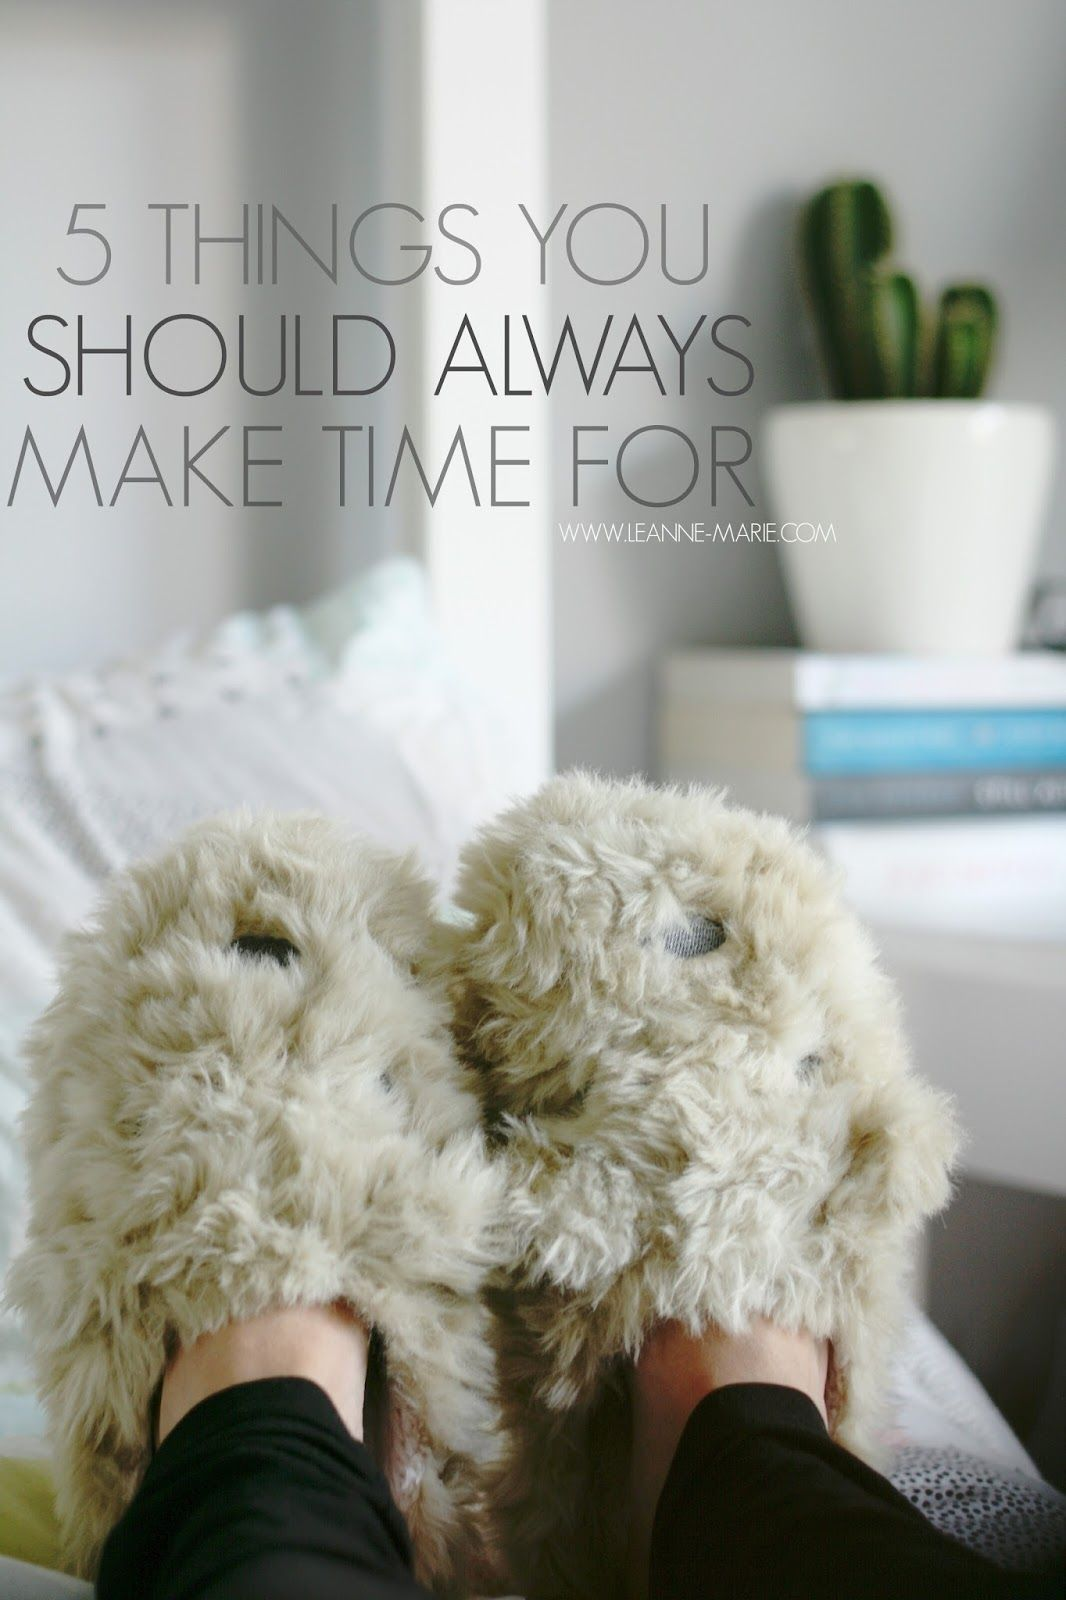 5 Things you should always make time for.